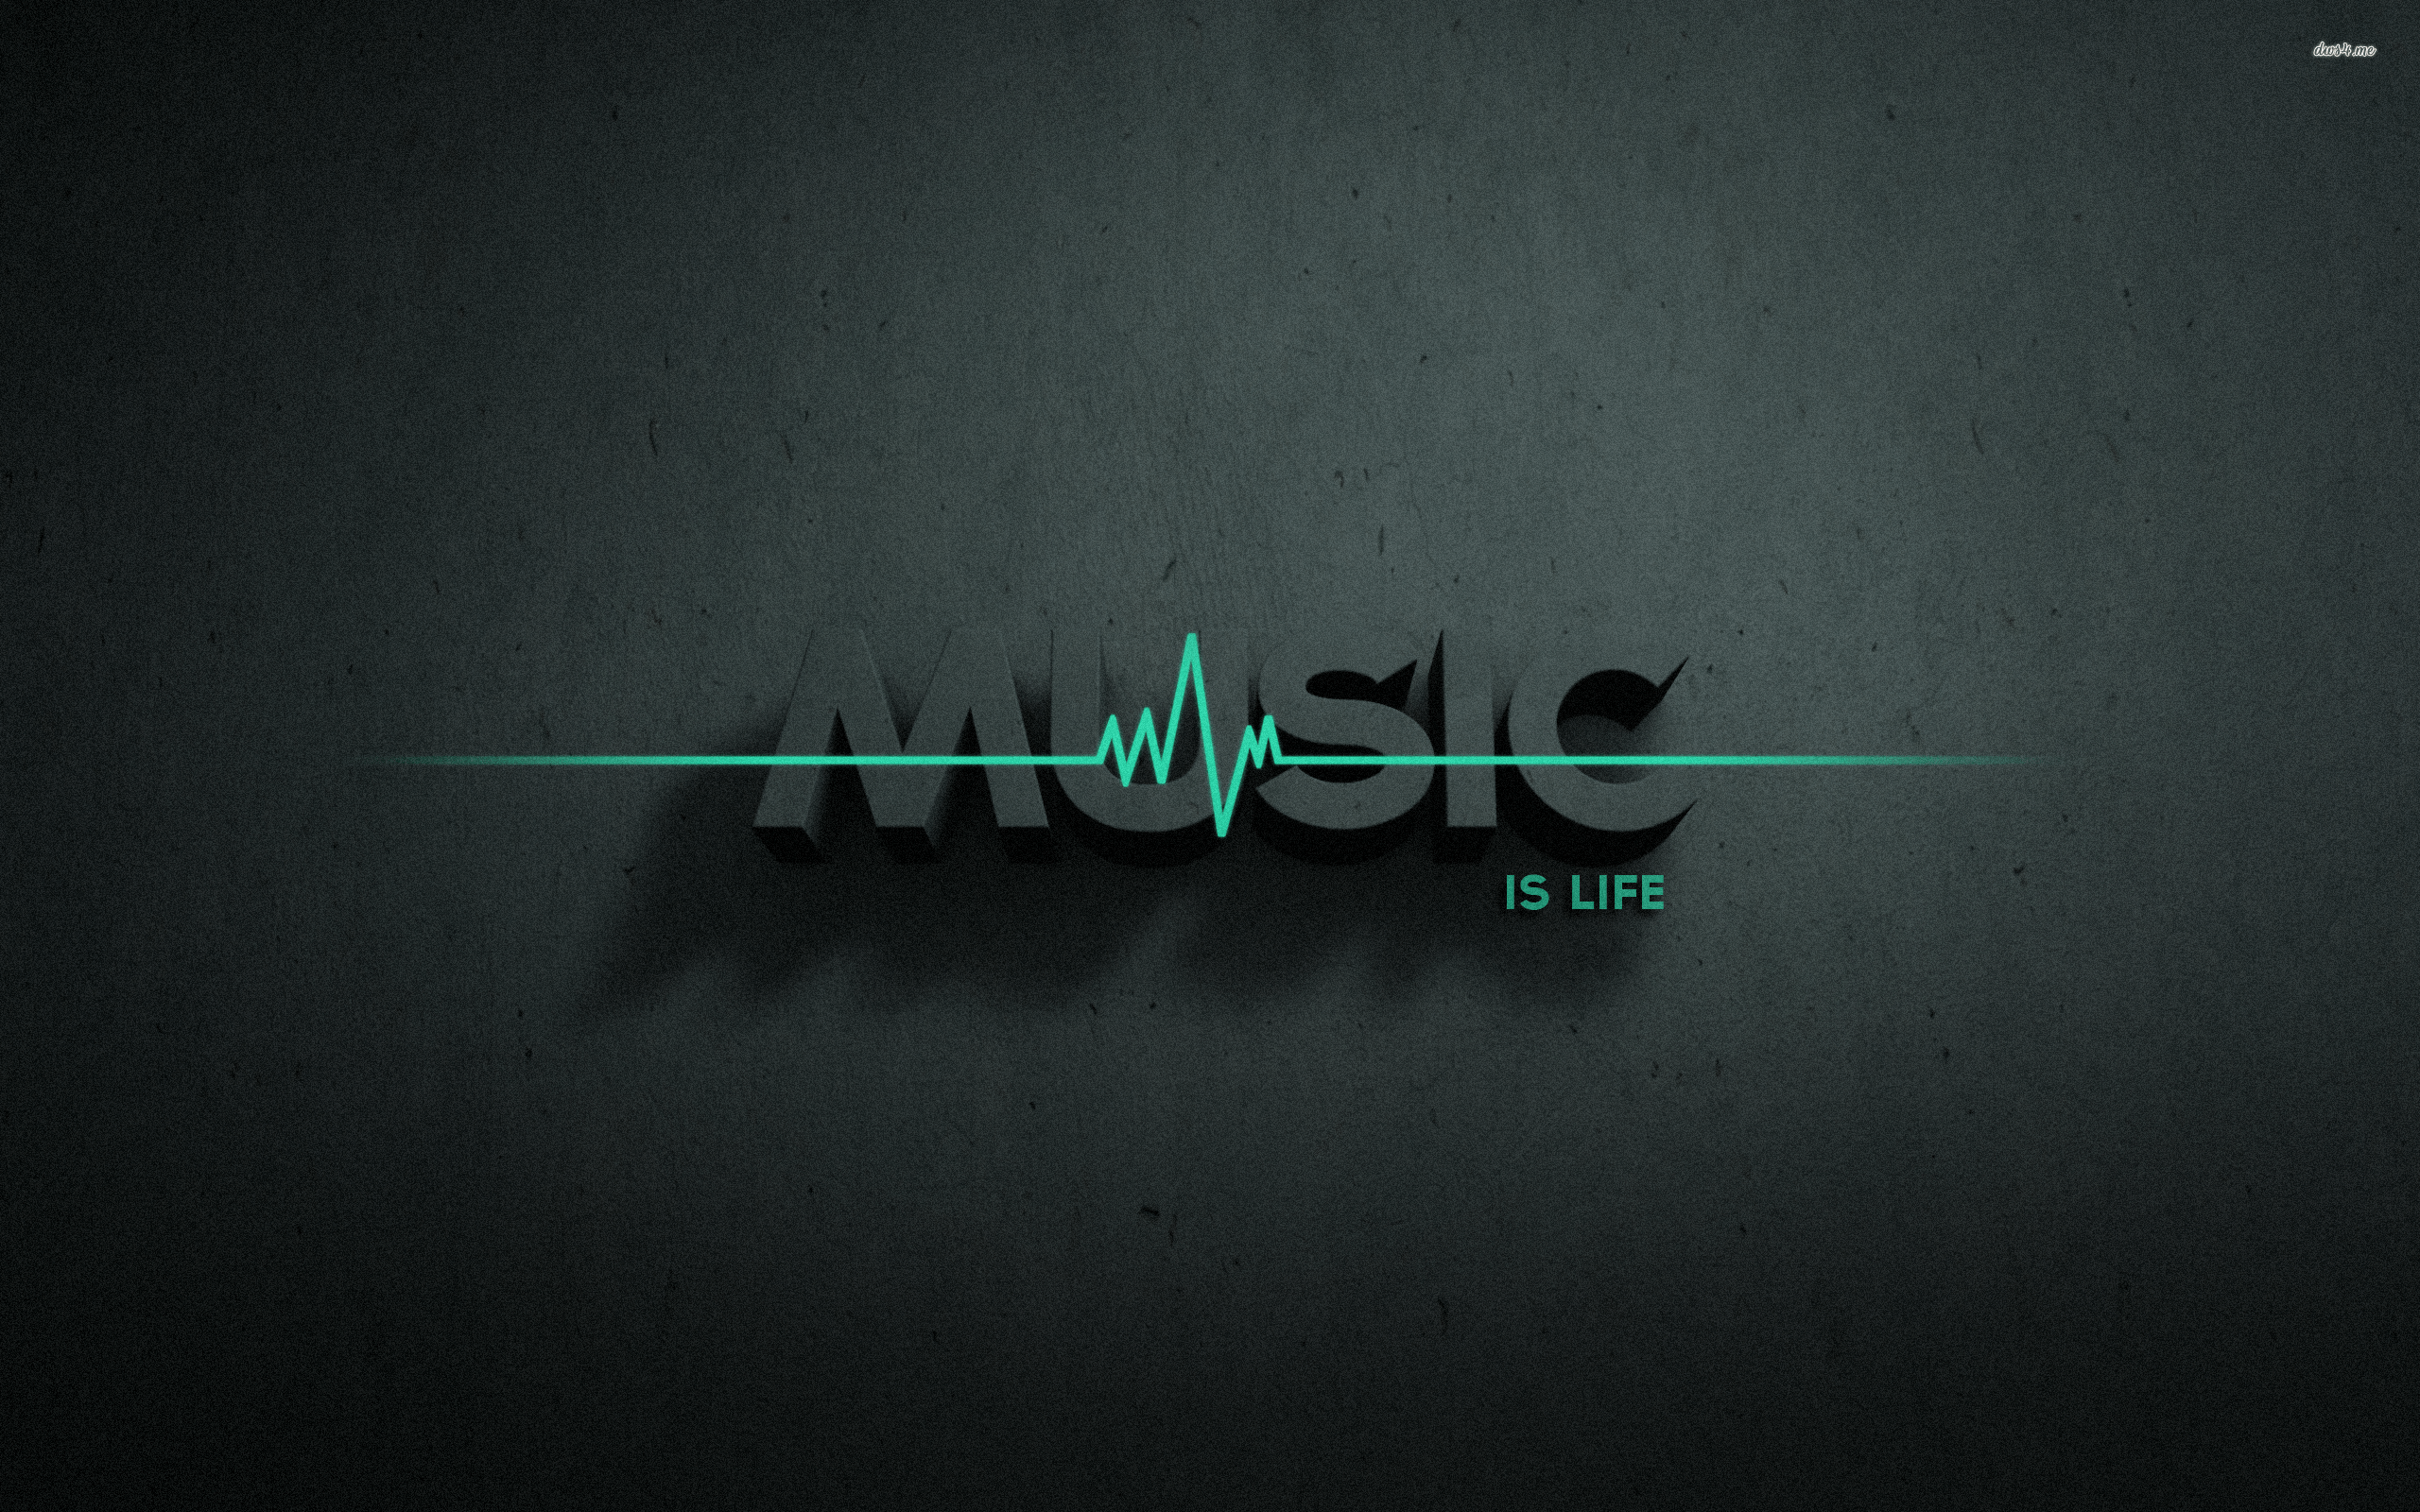 Wallpapers Hd Music Wallpaper Cave